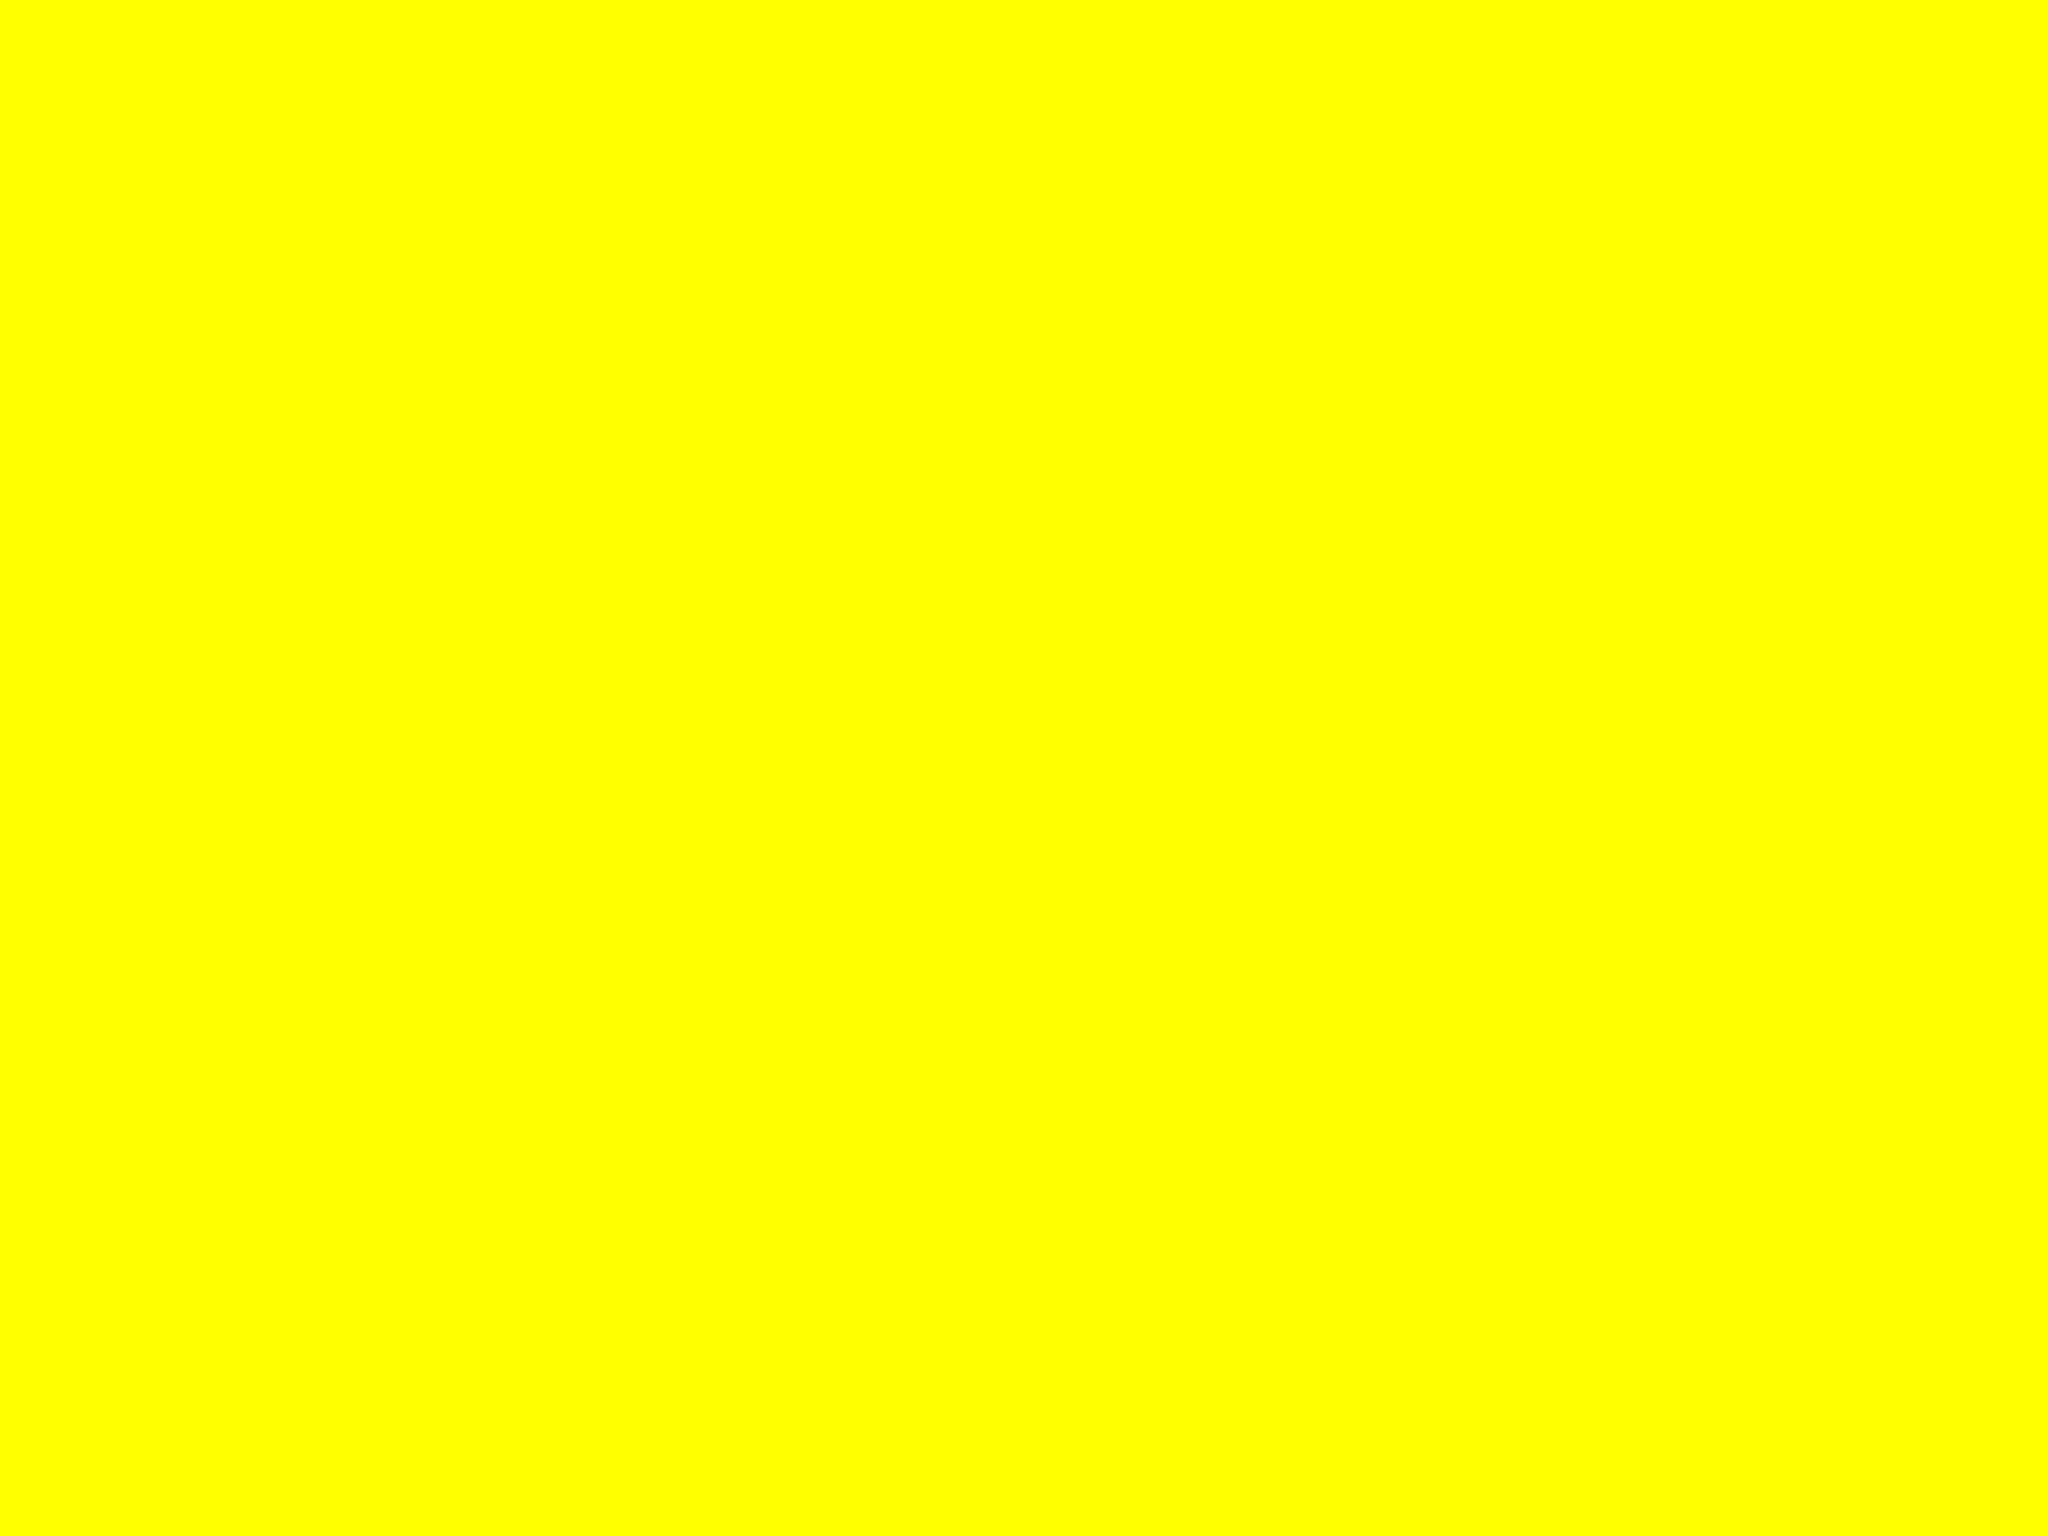 2048x1536 Yellow Solid Color Background